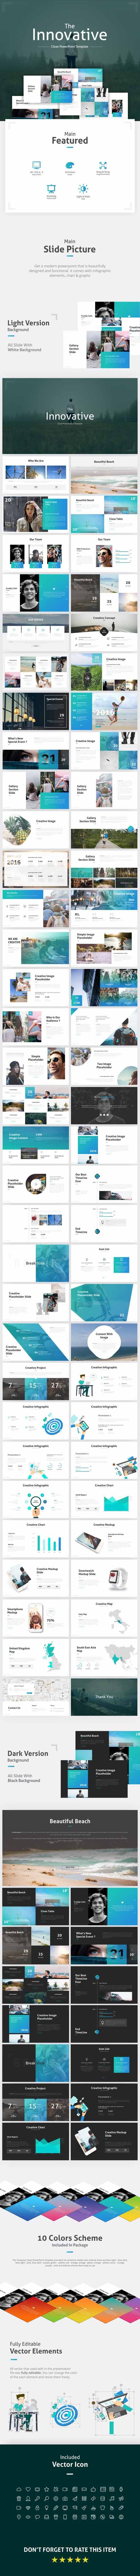 GR - The Innovative Clean PowerPoint Template 19237575